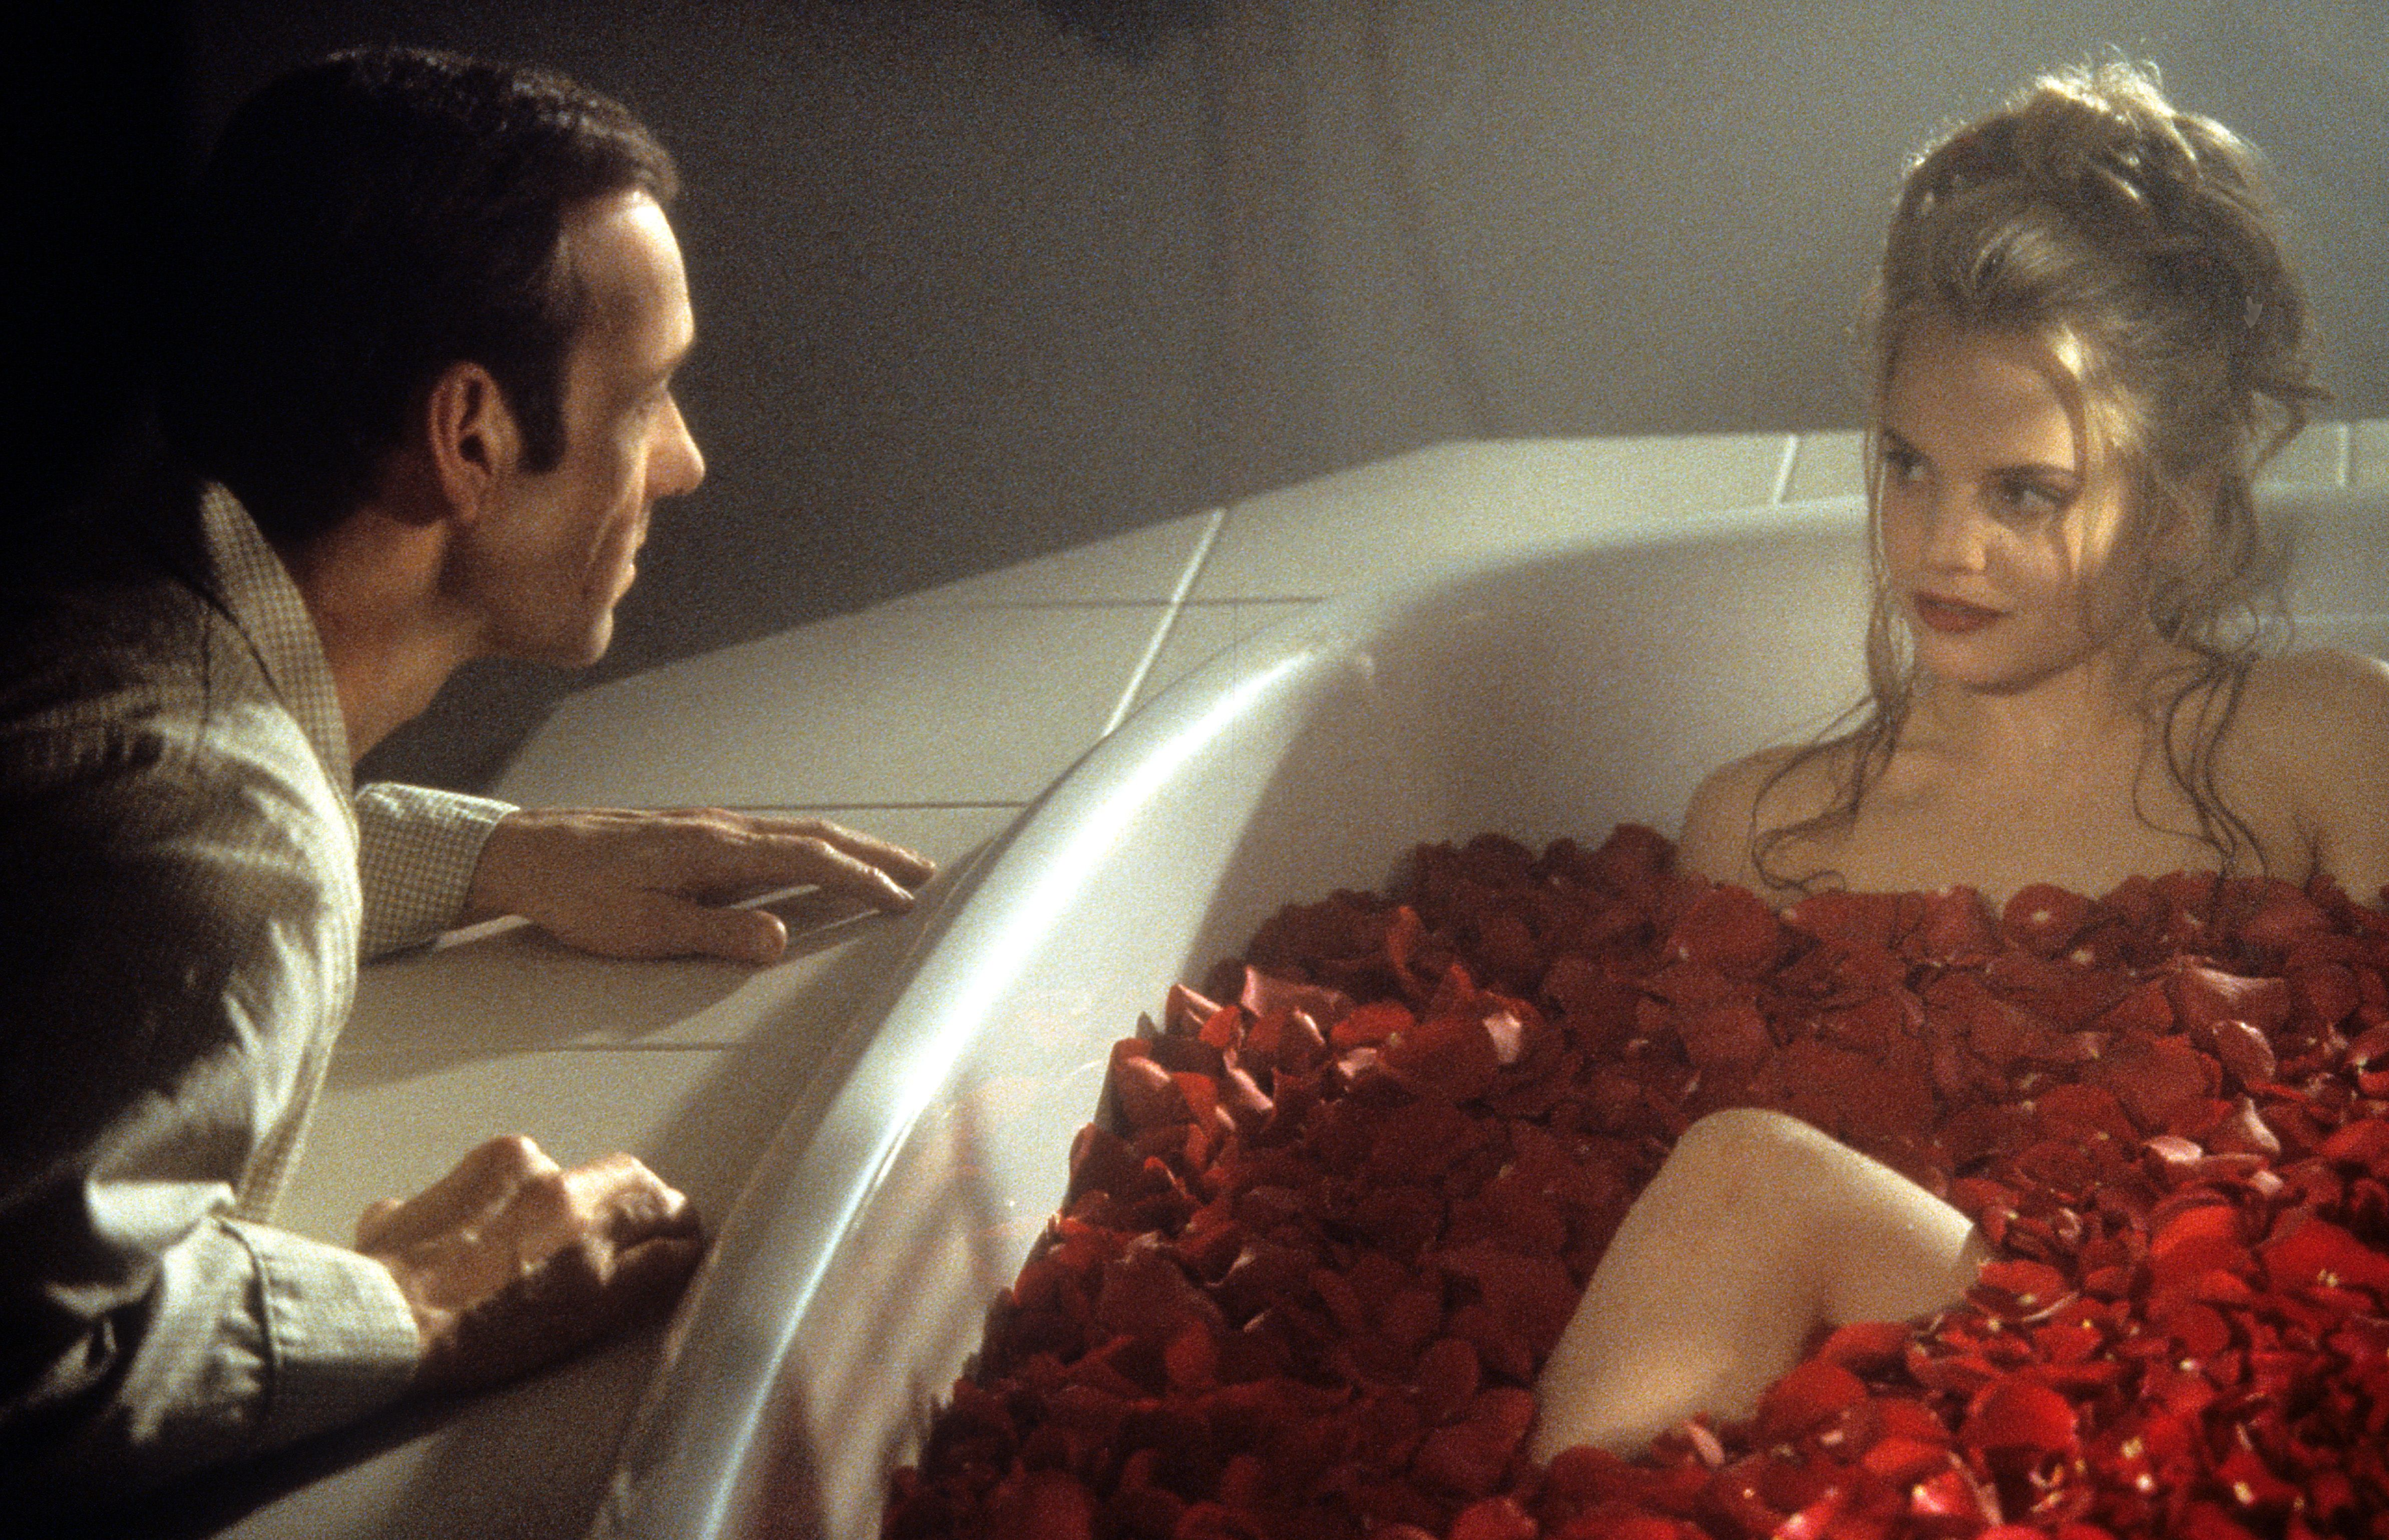 The Troubled Legacy Of 'American Beauty', 20 Years On